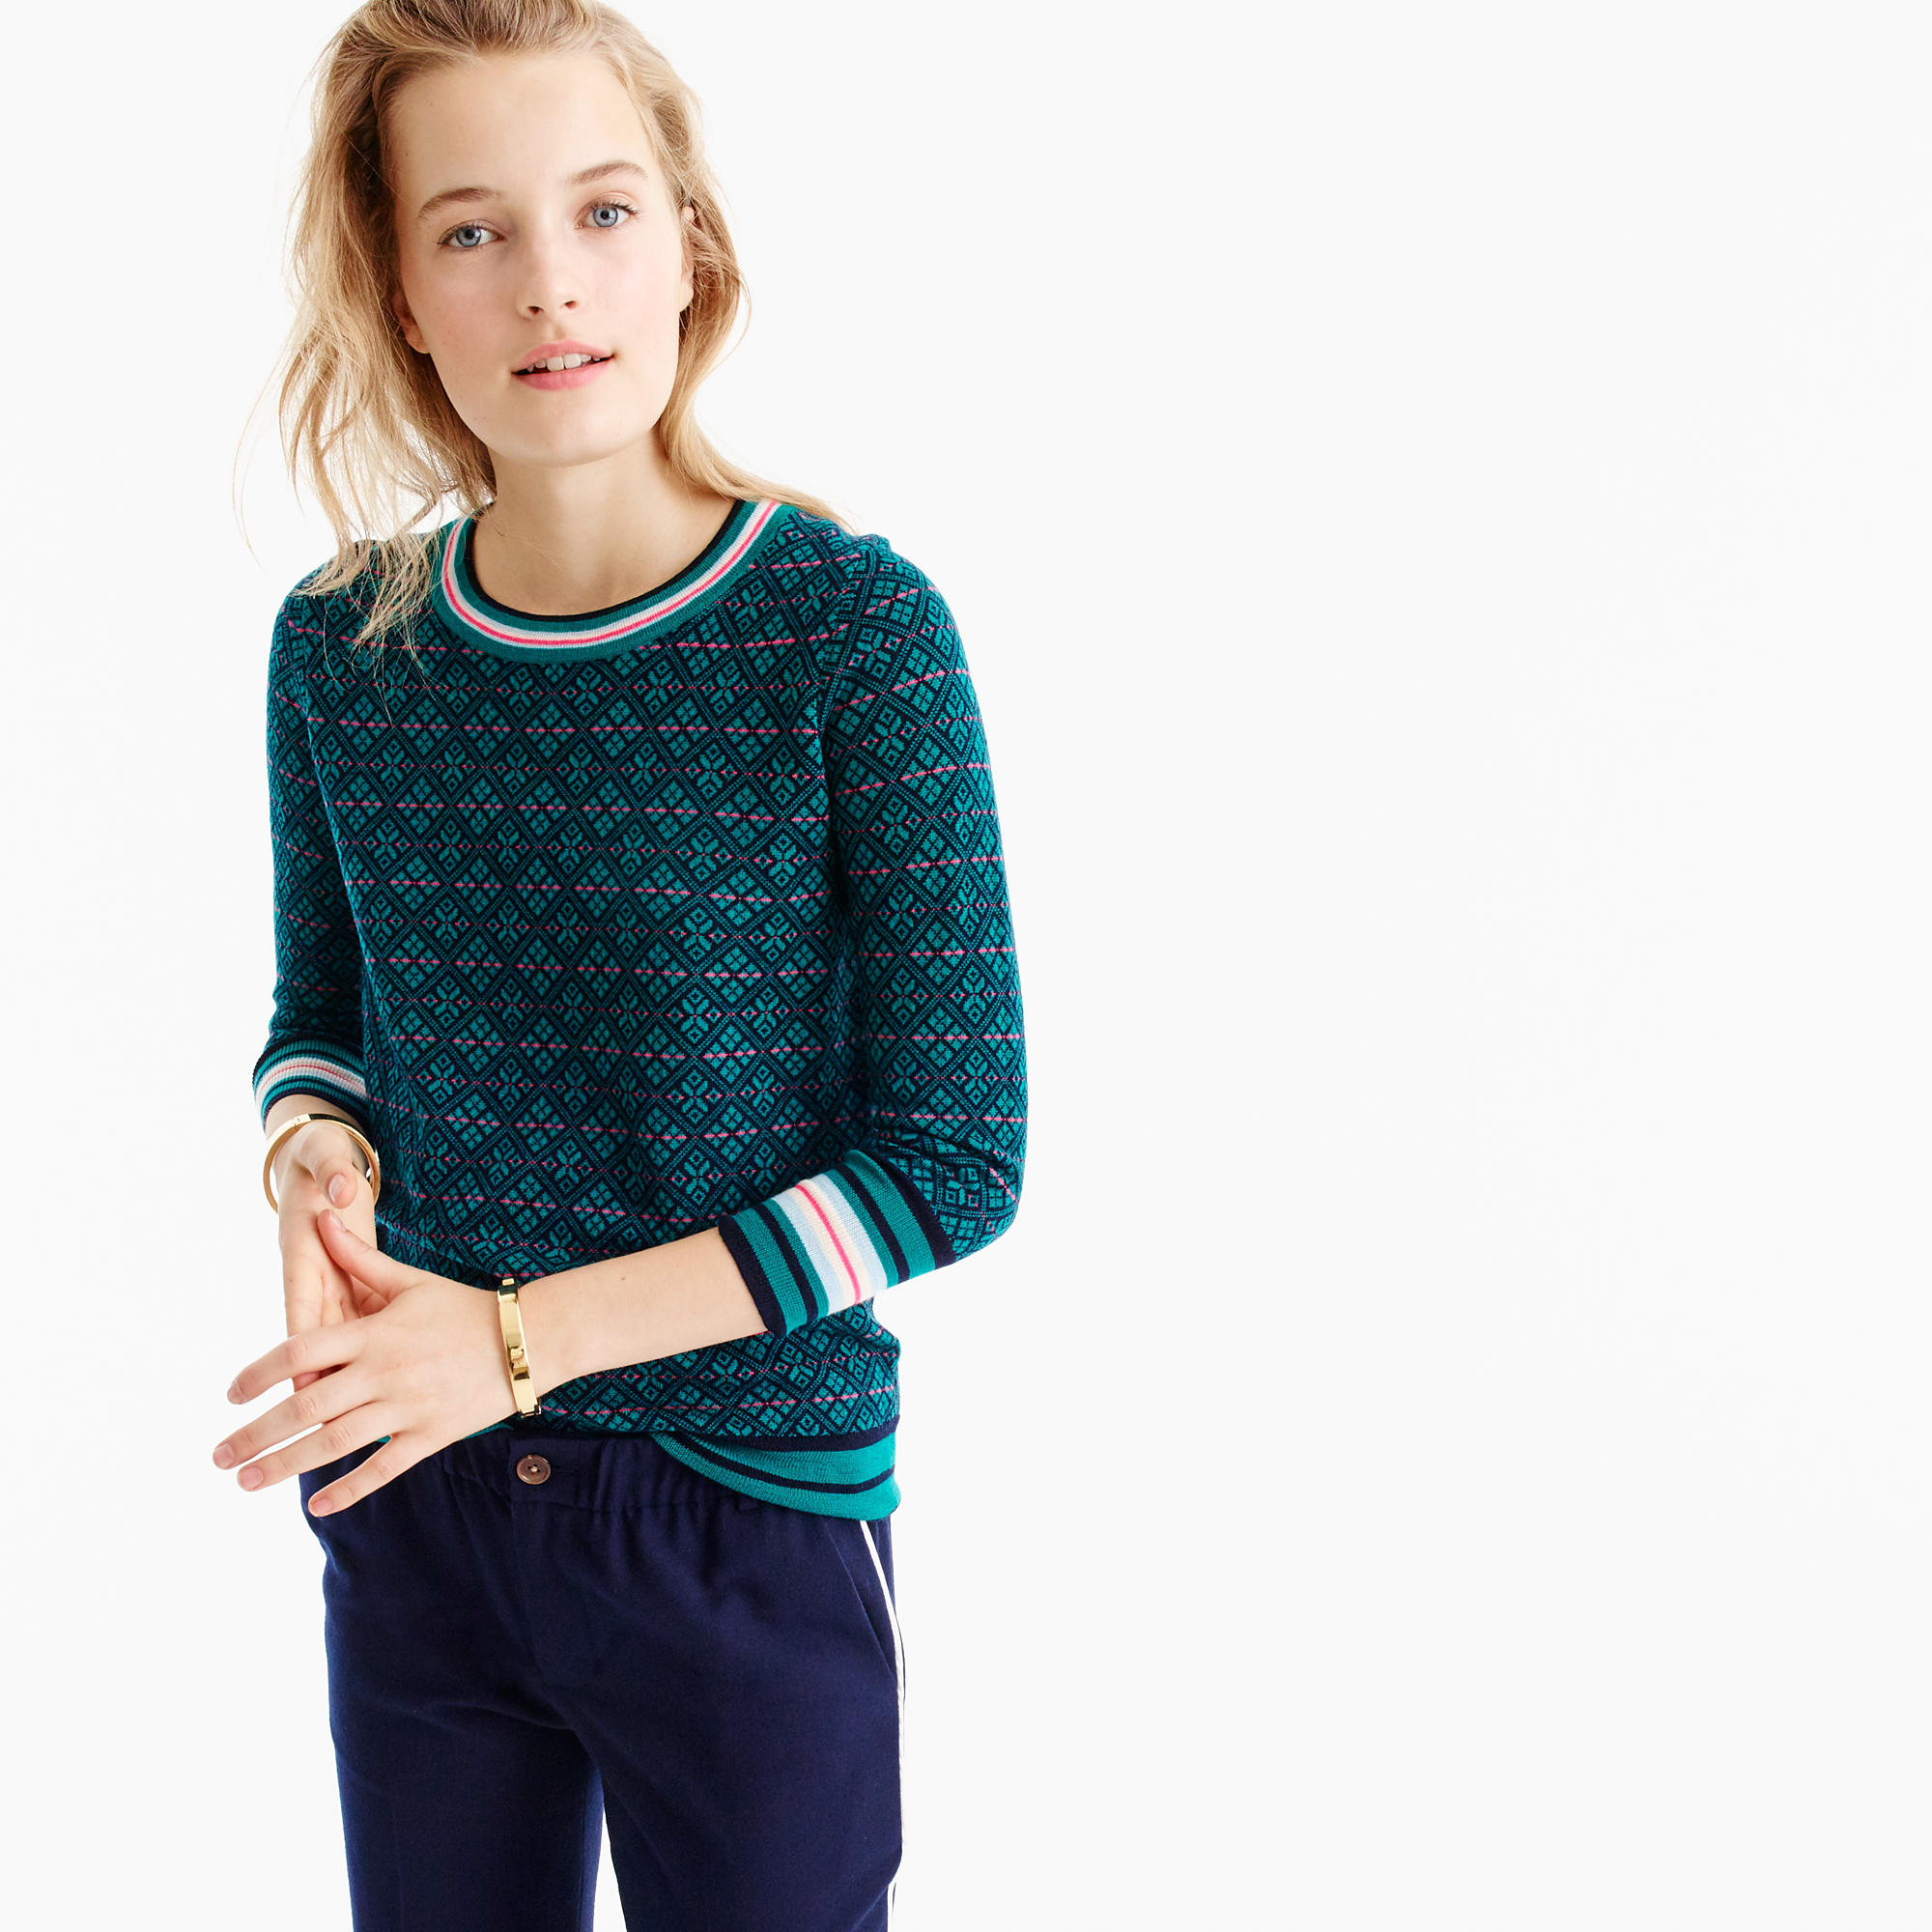 Fair Isle Sweater | Scottish Fair Isle Sweaters | Old Navy Fair Isle Sweater